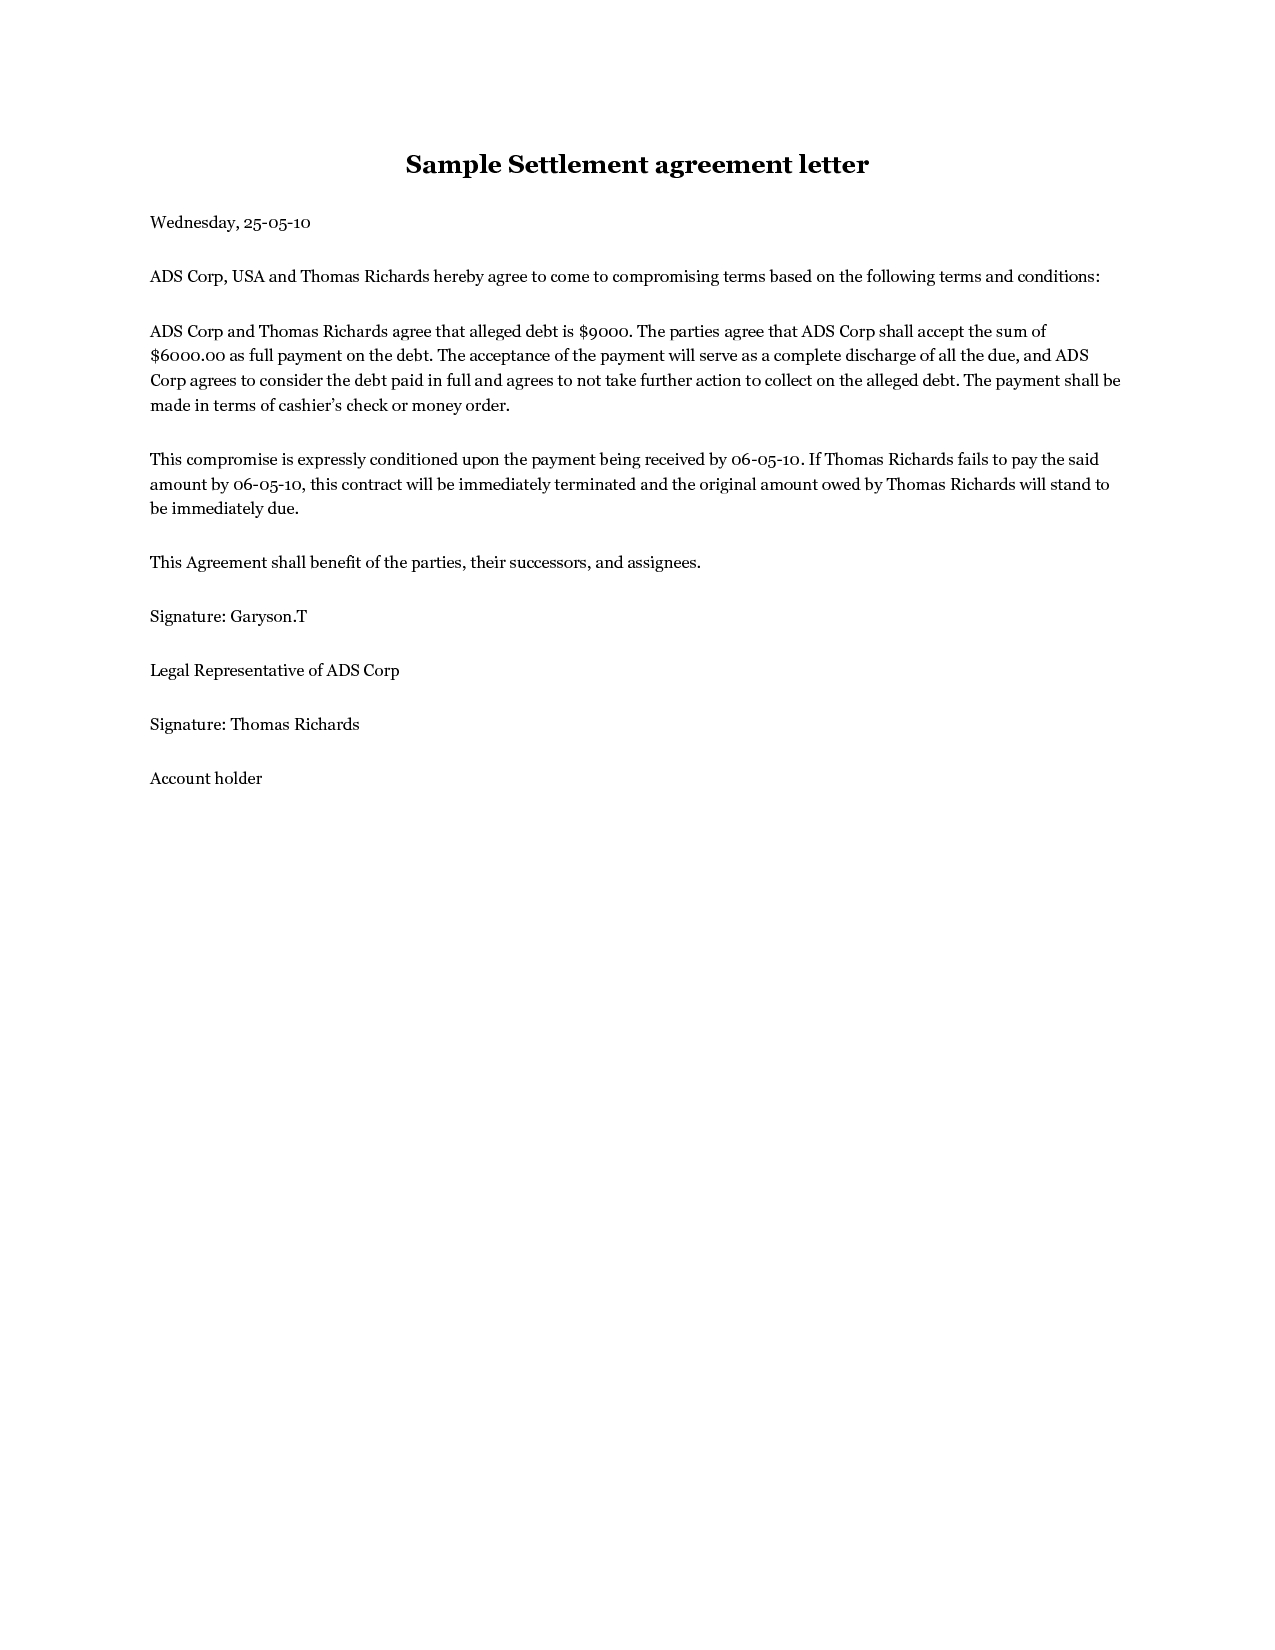 Debt settlement agreement letter template samples letter for Debt negotiation letter template